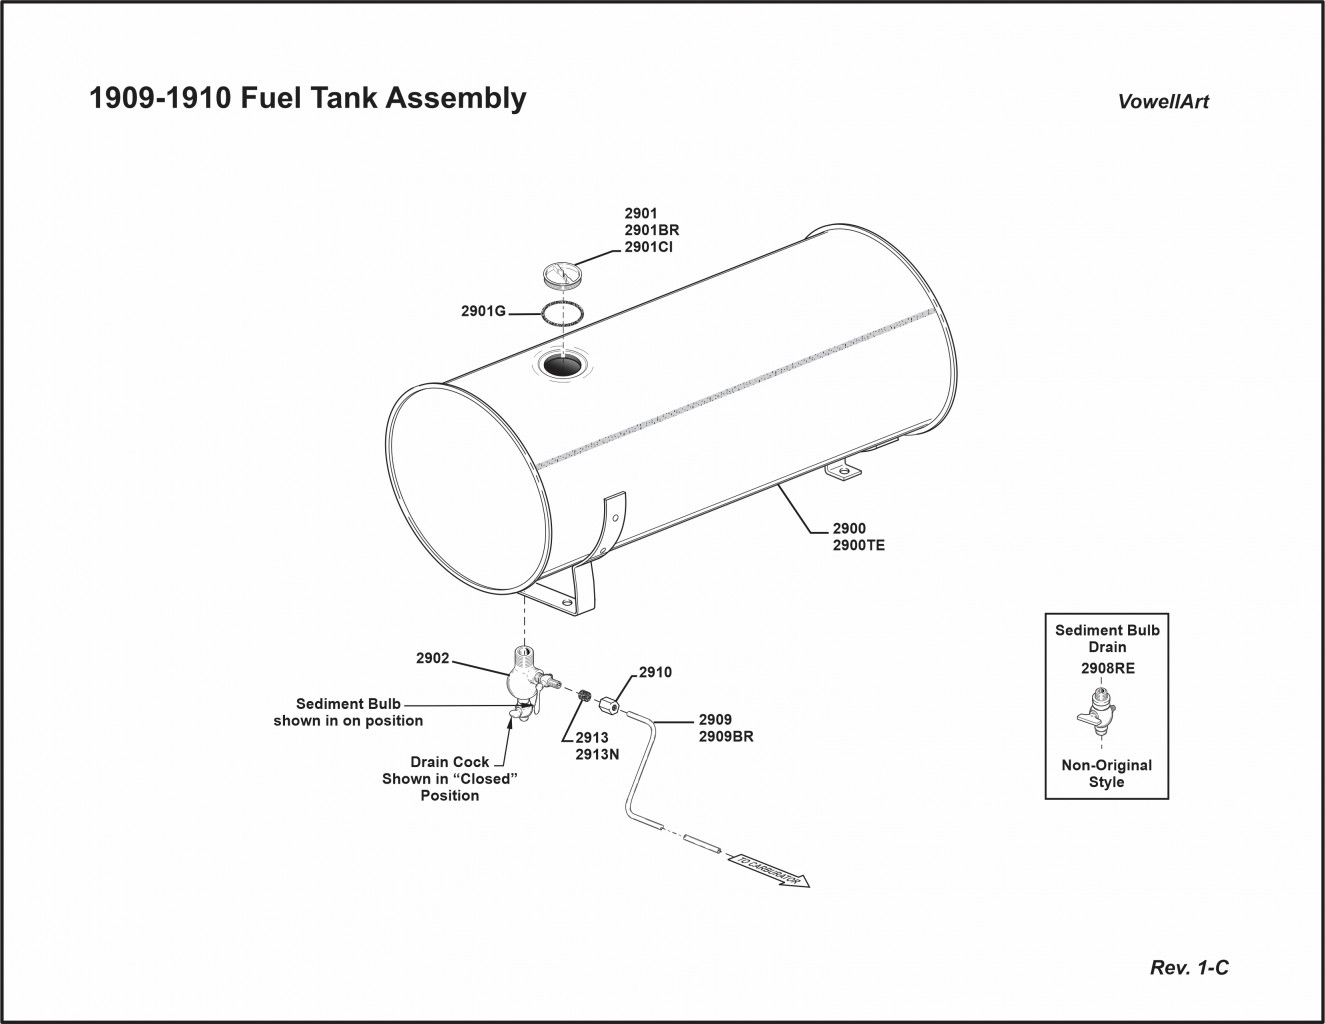 1909-1910 Fuel Tank Assembly